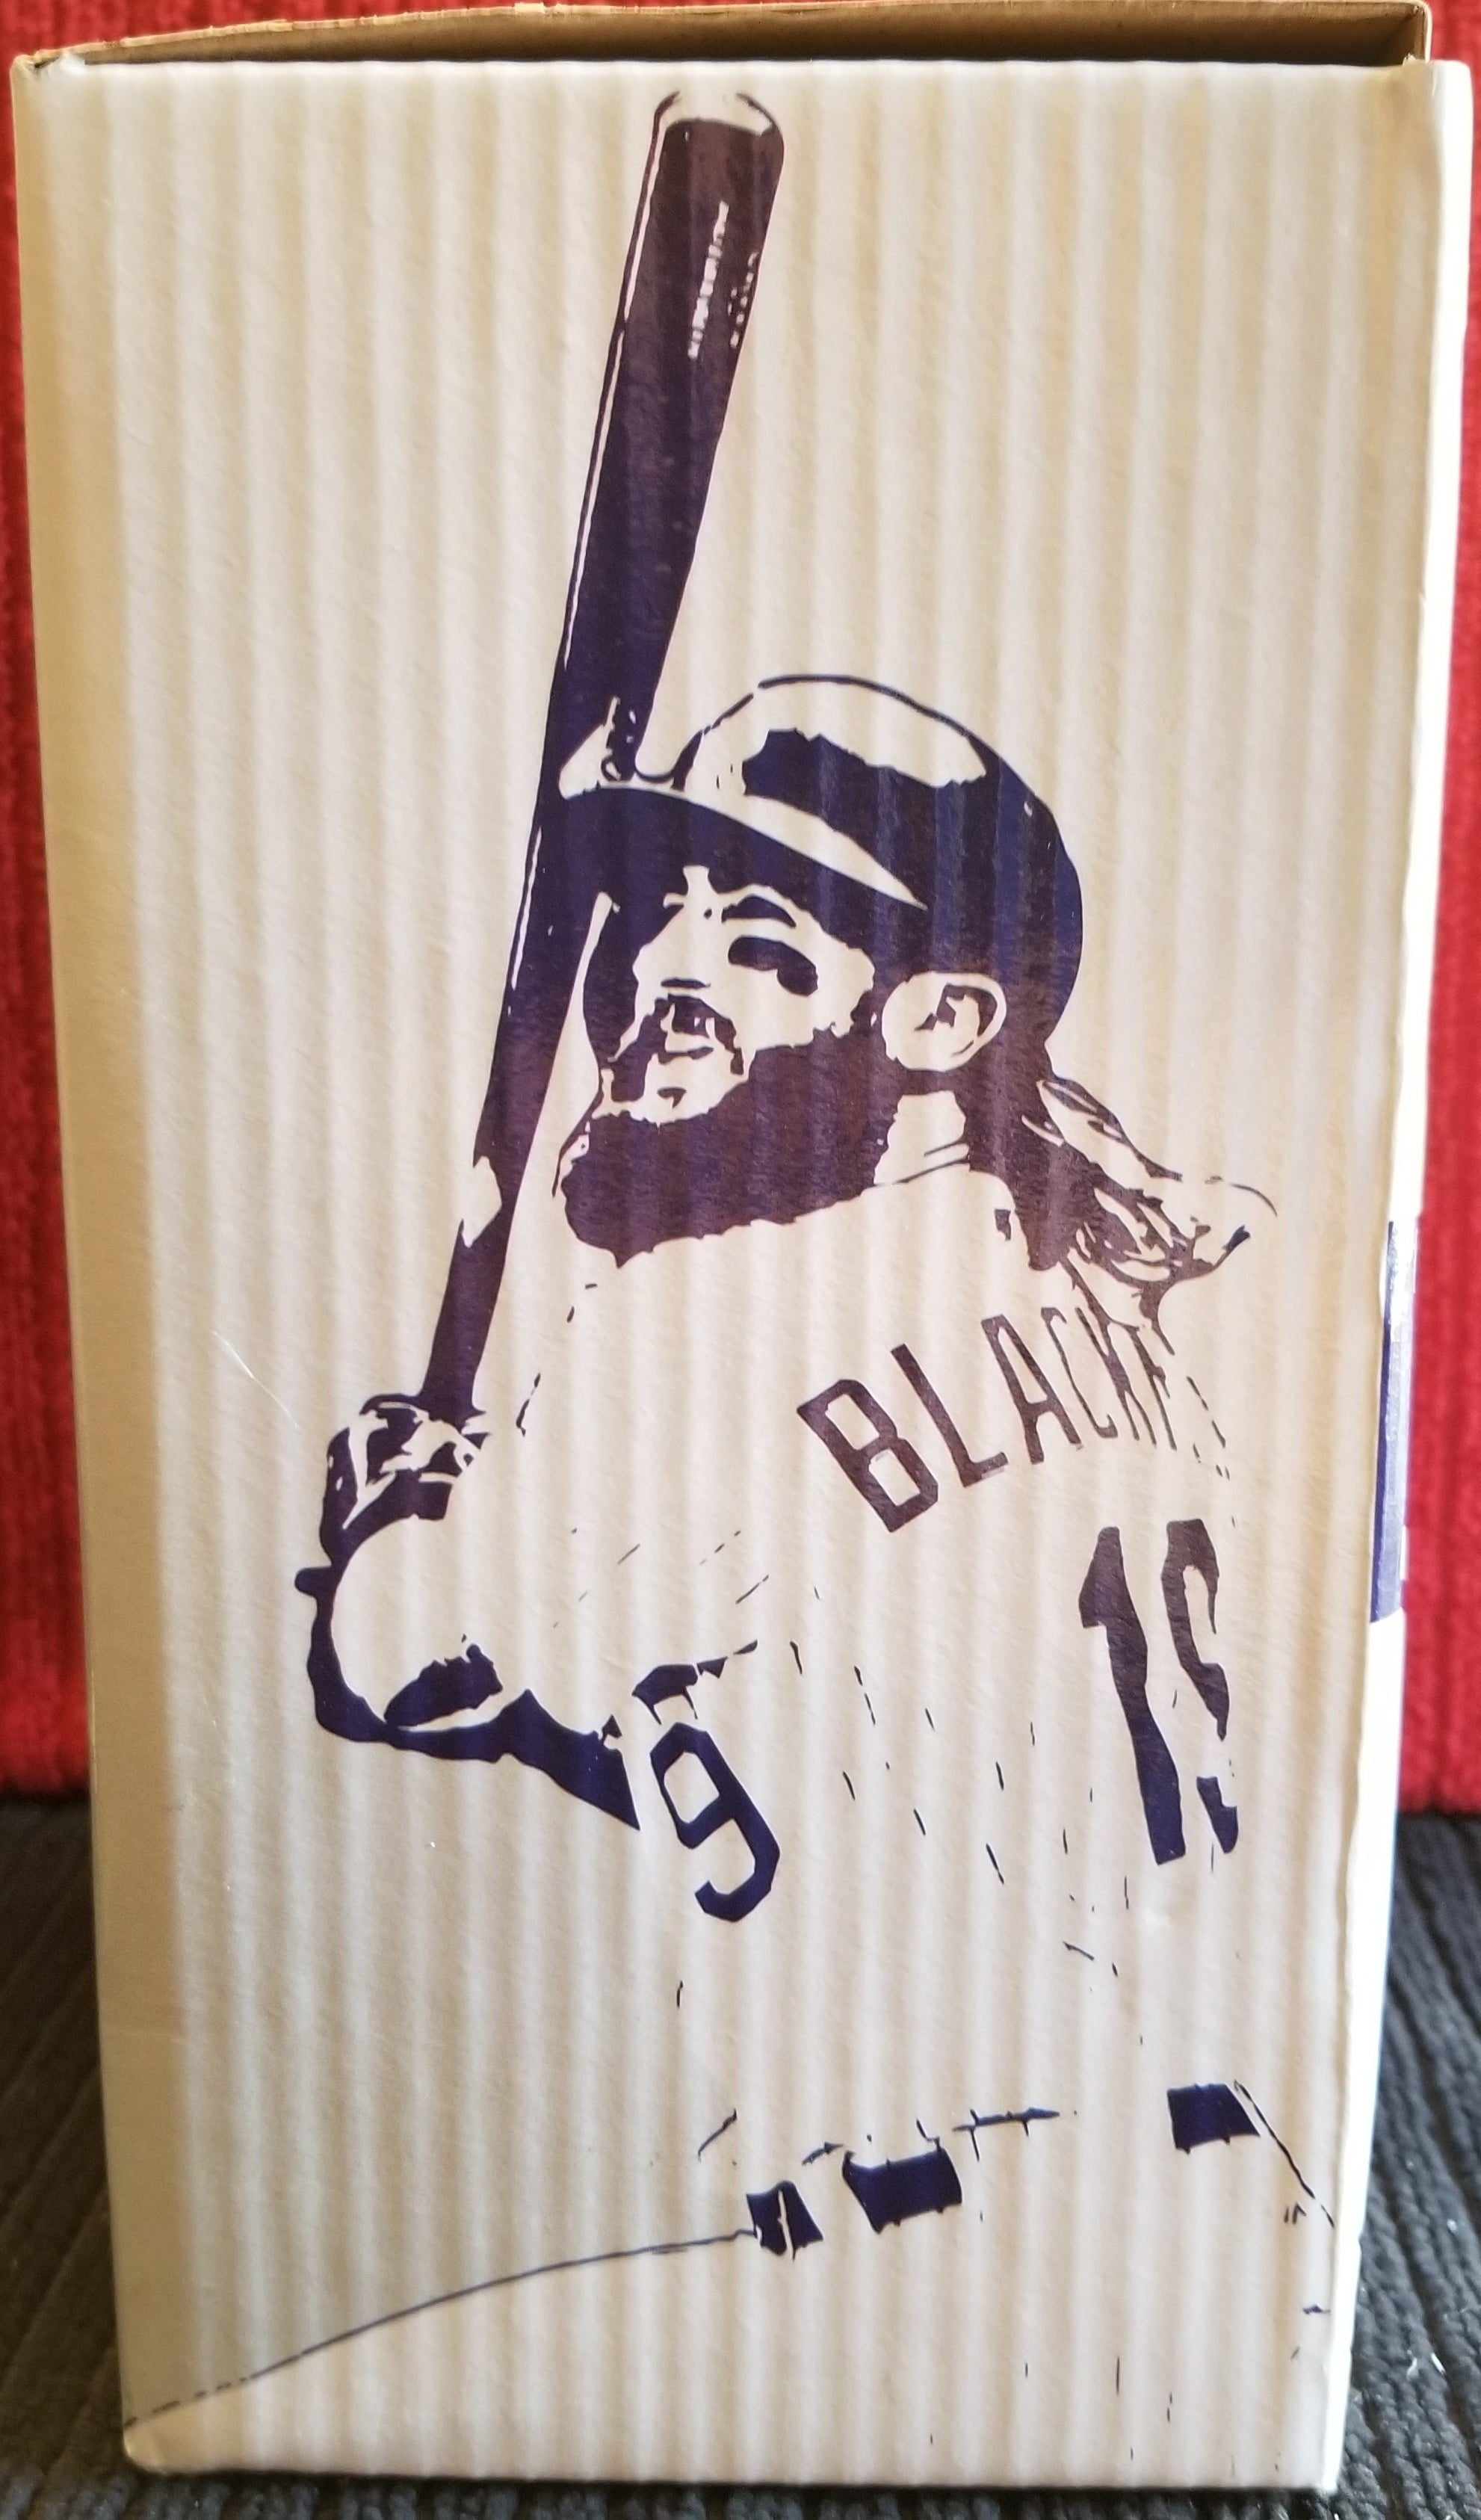 Charlie Blackmon #19 Colorado Rockies 25th Anniversary 2018 Shane Company Collector's edition (SGA) Bobblehead